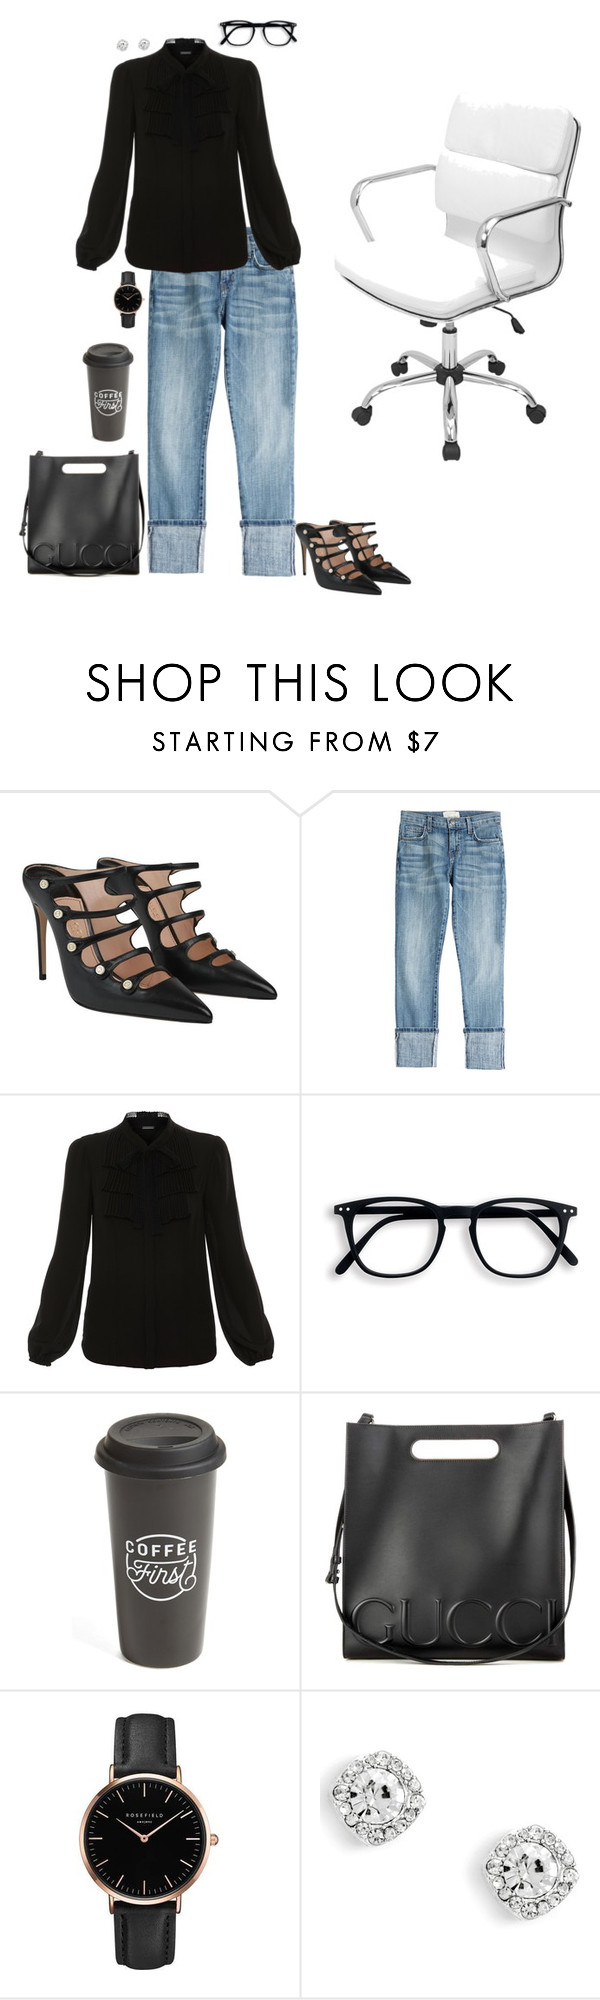 """another busy day"" by lila77 ❤ liked on Polyvore featuring Gucci, Current/Elliott, Elie Tahari, The Created Co., Topshop and LumiSource"